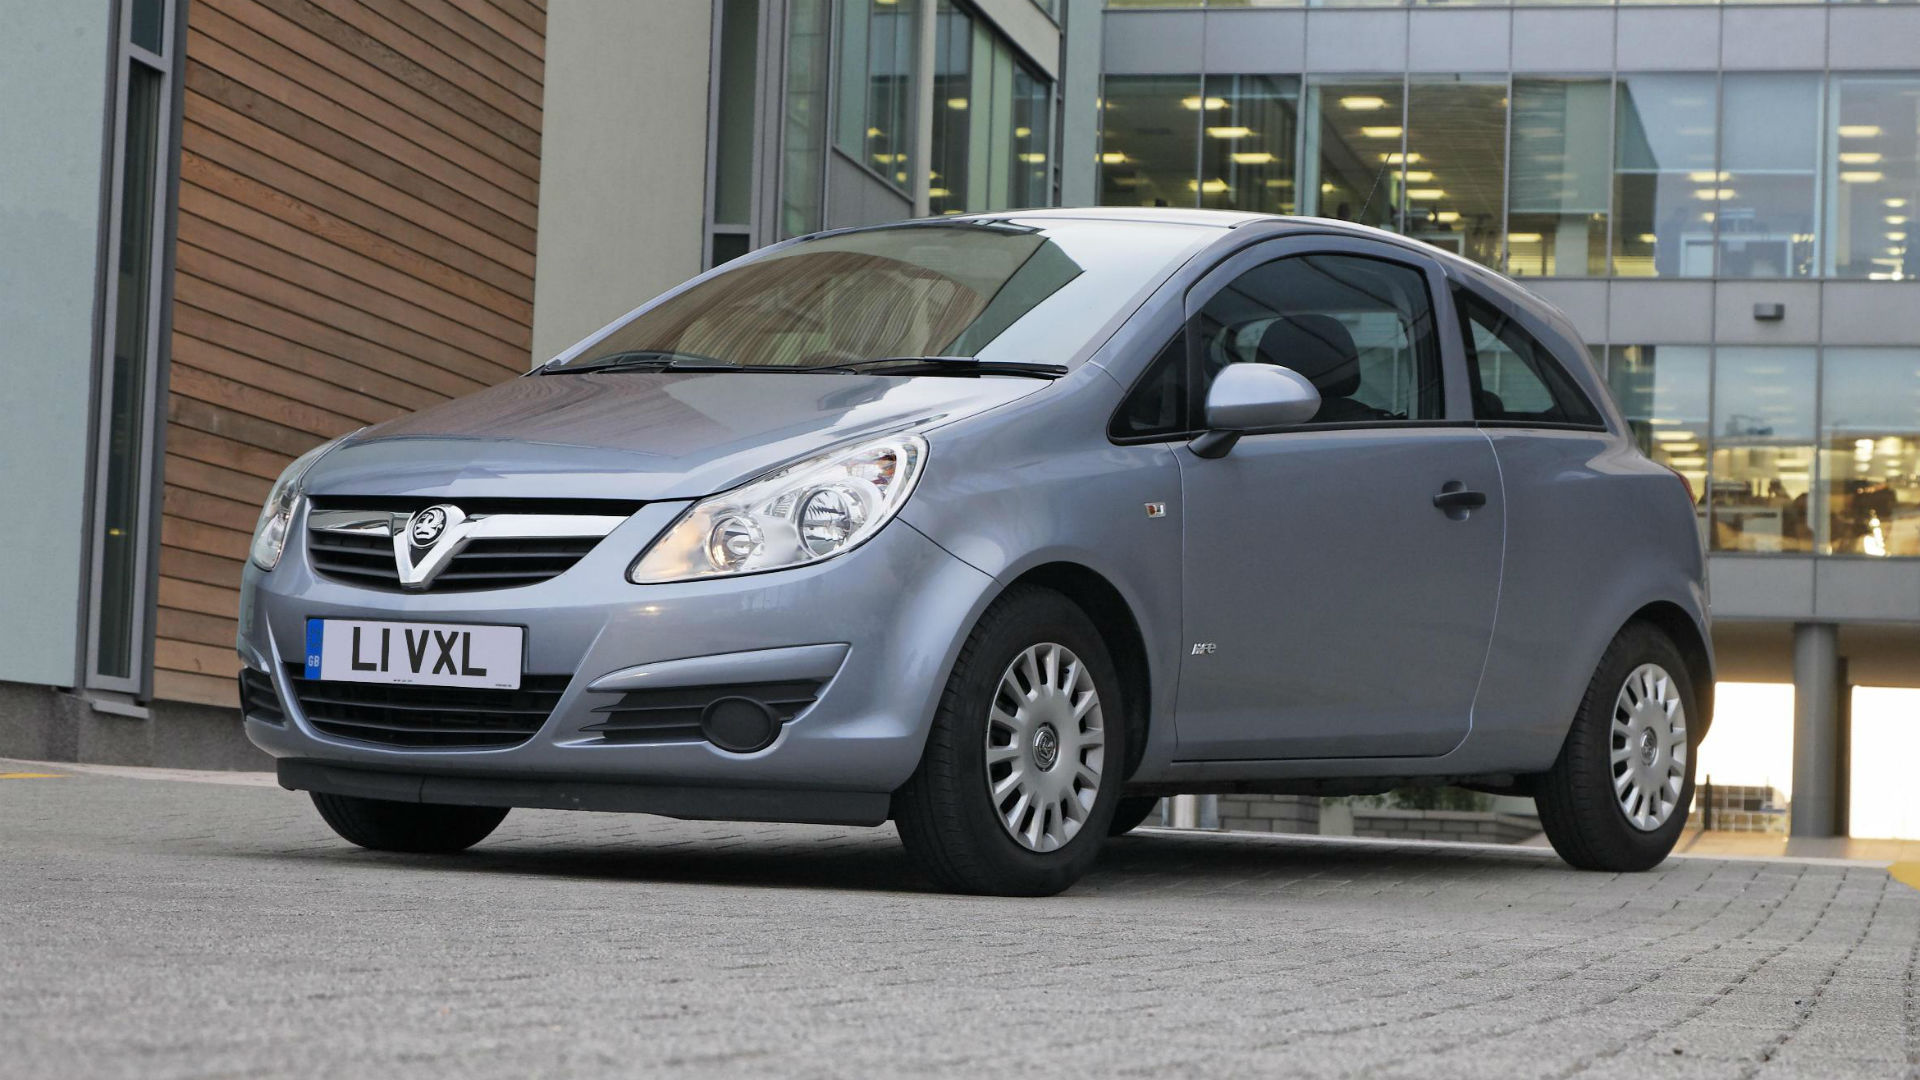 Vauxhall Corsa most serviced car